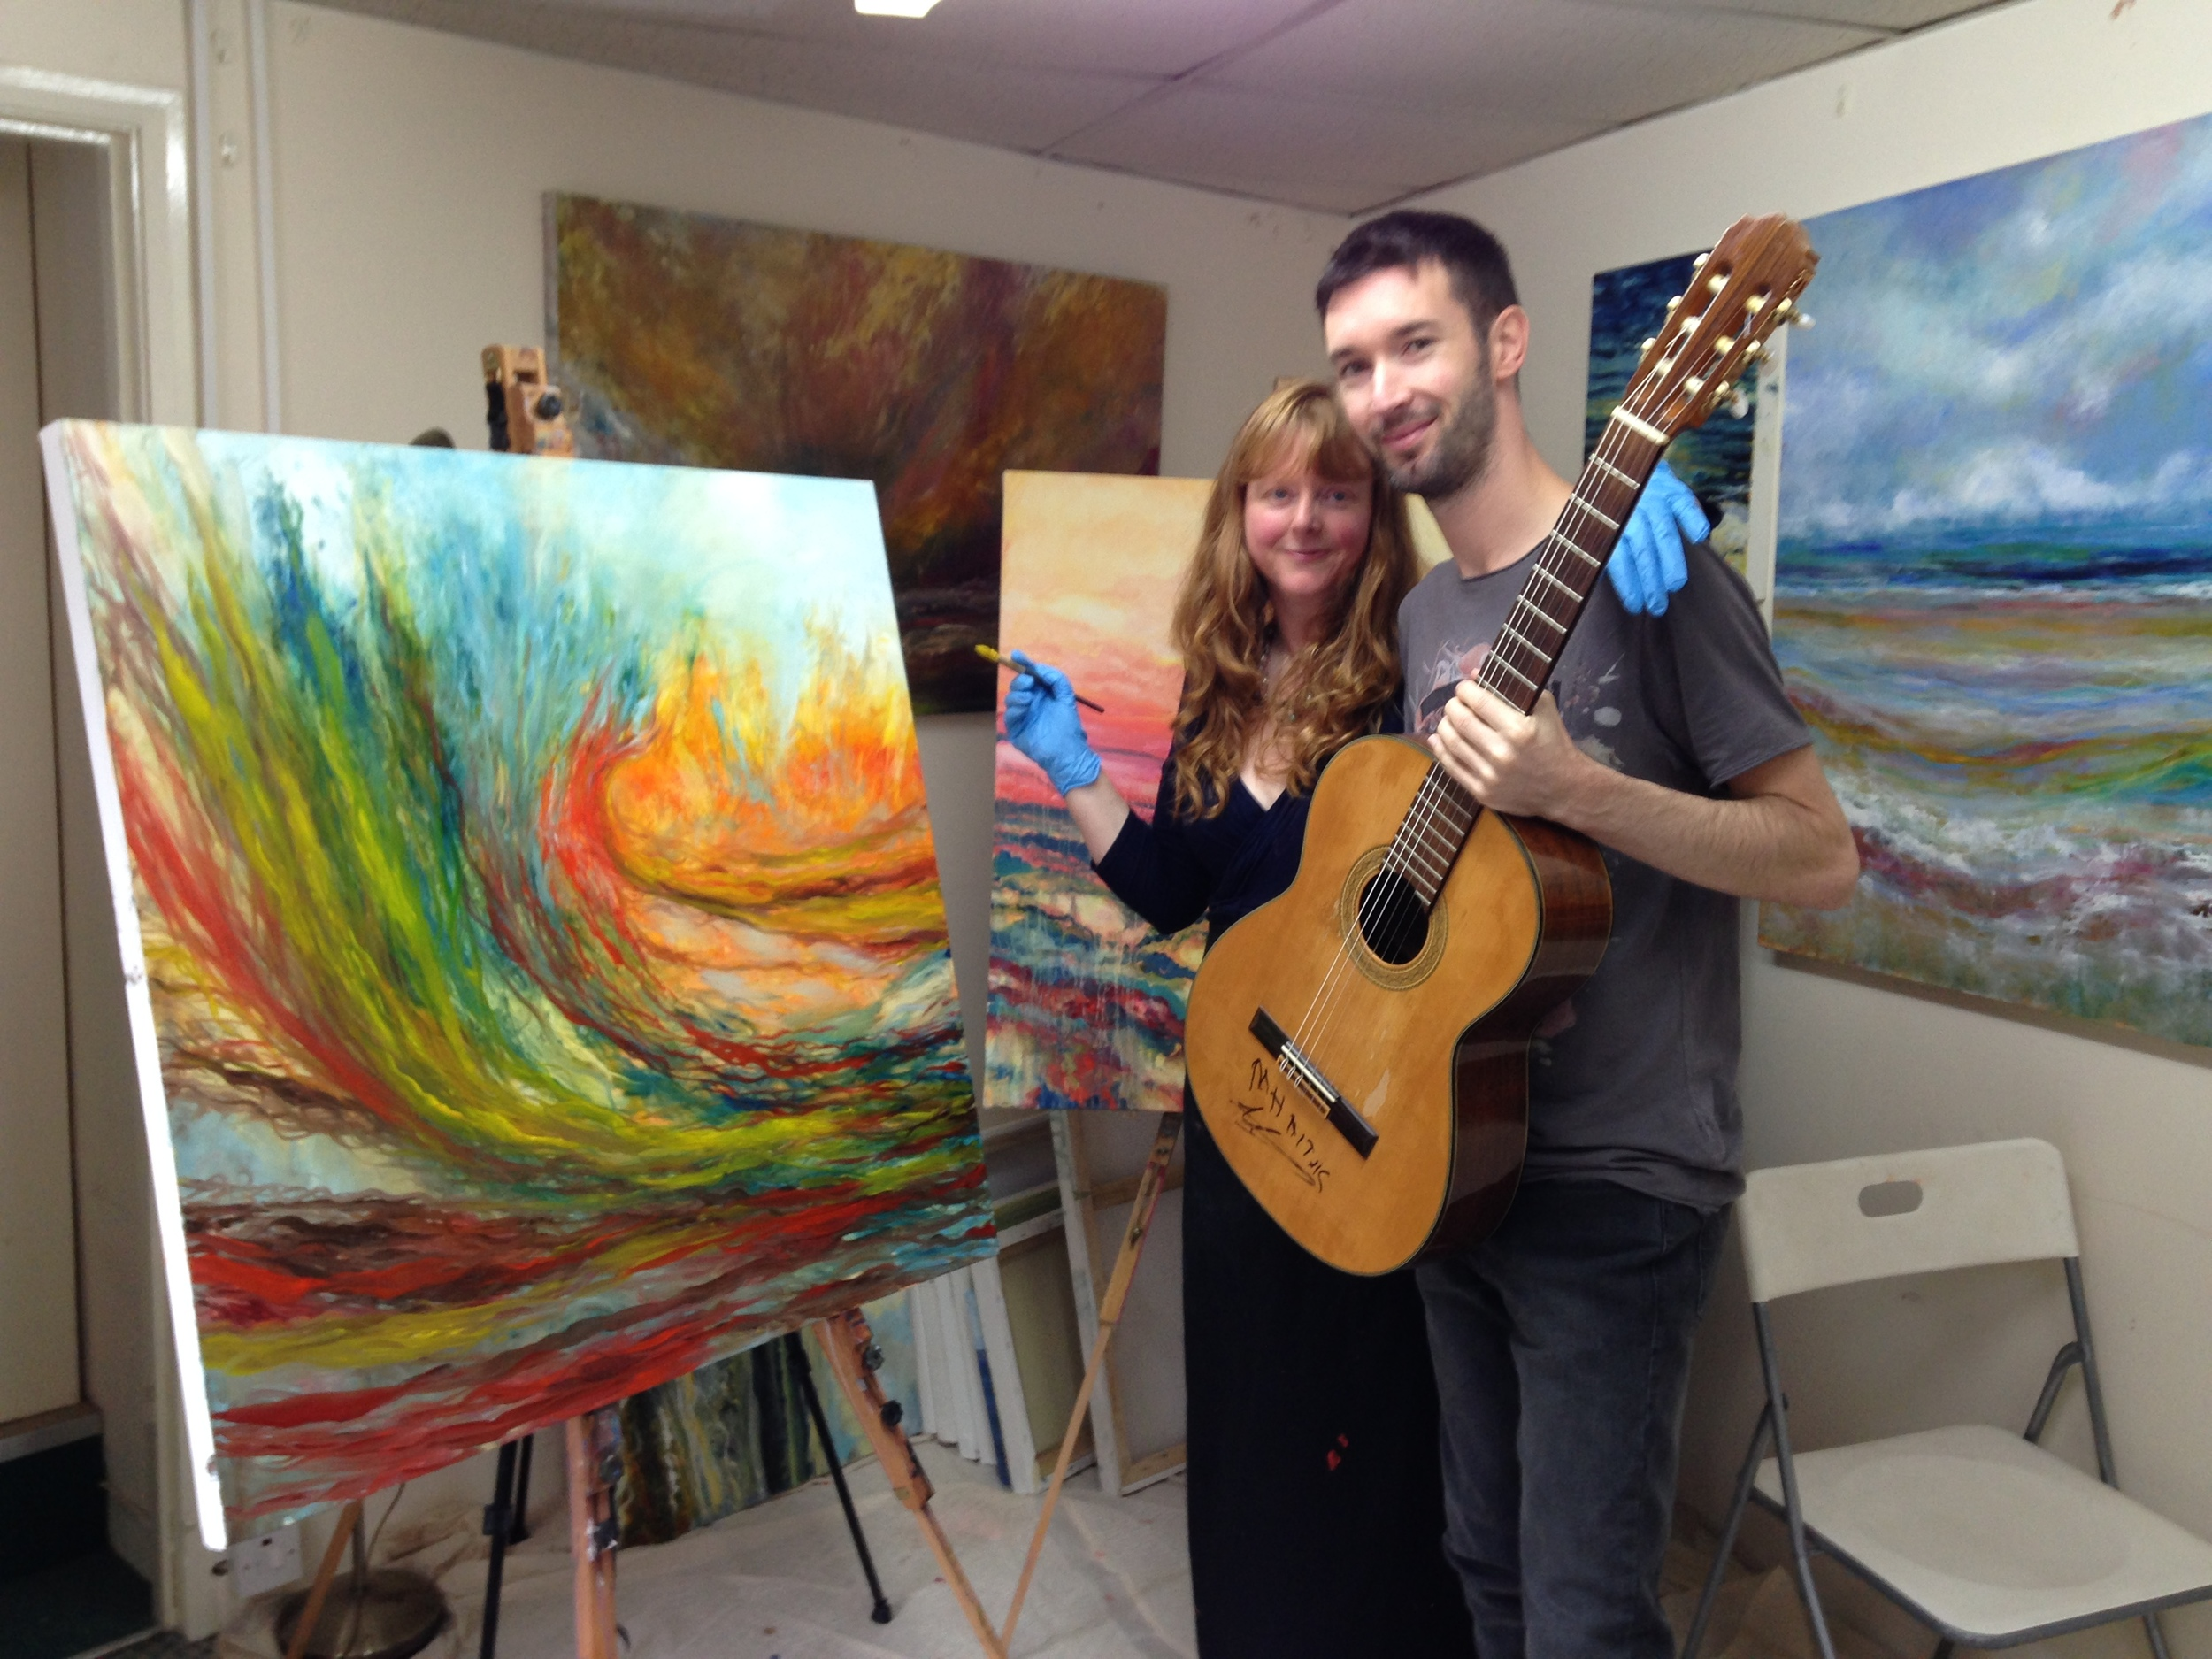 Katie sarra and adam westcott in katie's studio at the aardvark gallery in teignmouth